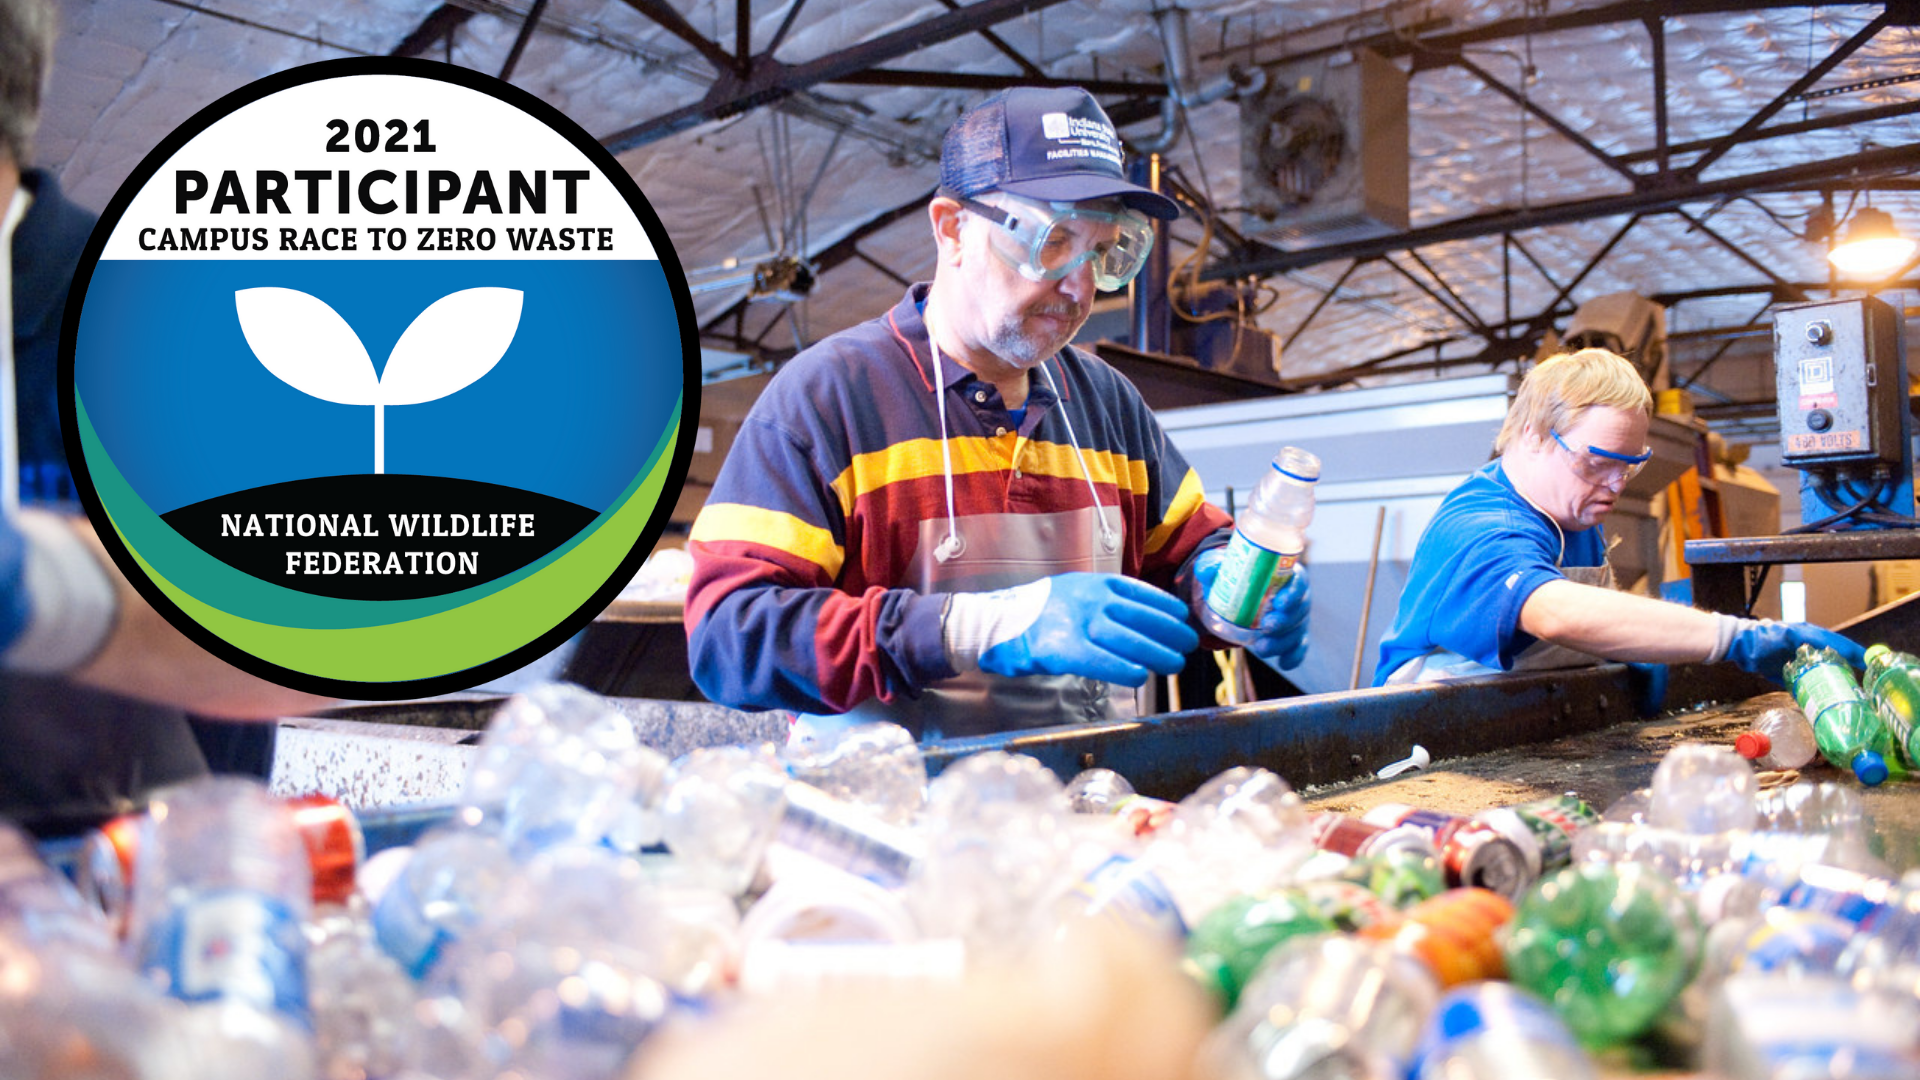 Man sorting recyclable commodities with safety glasses and gloves, and the Campus Race to Zero Waste logo